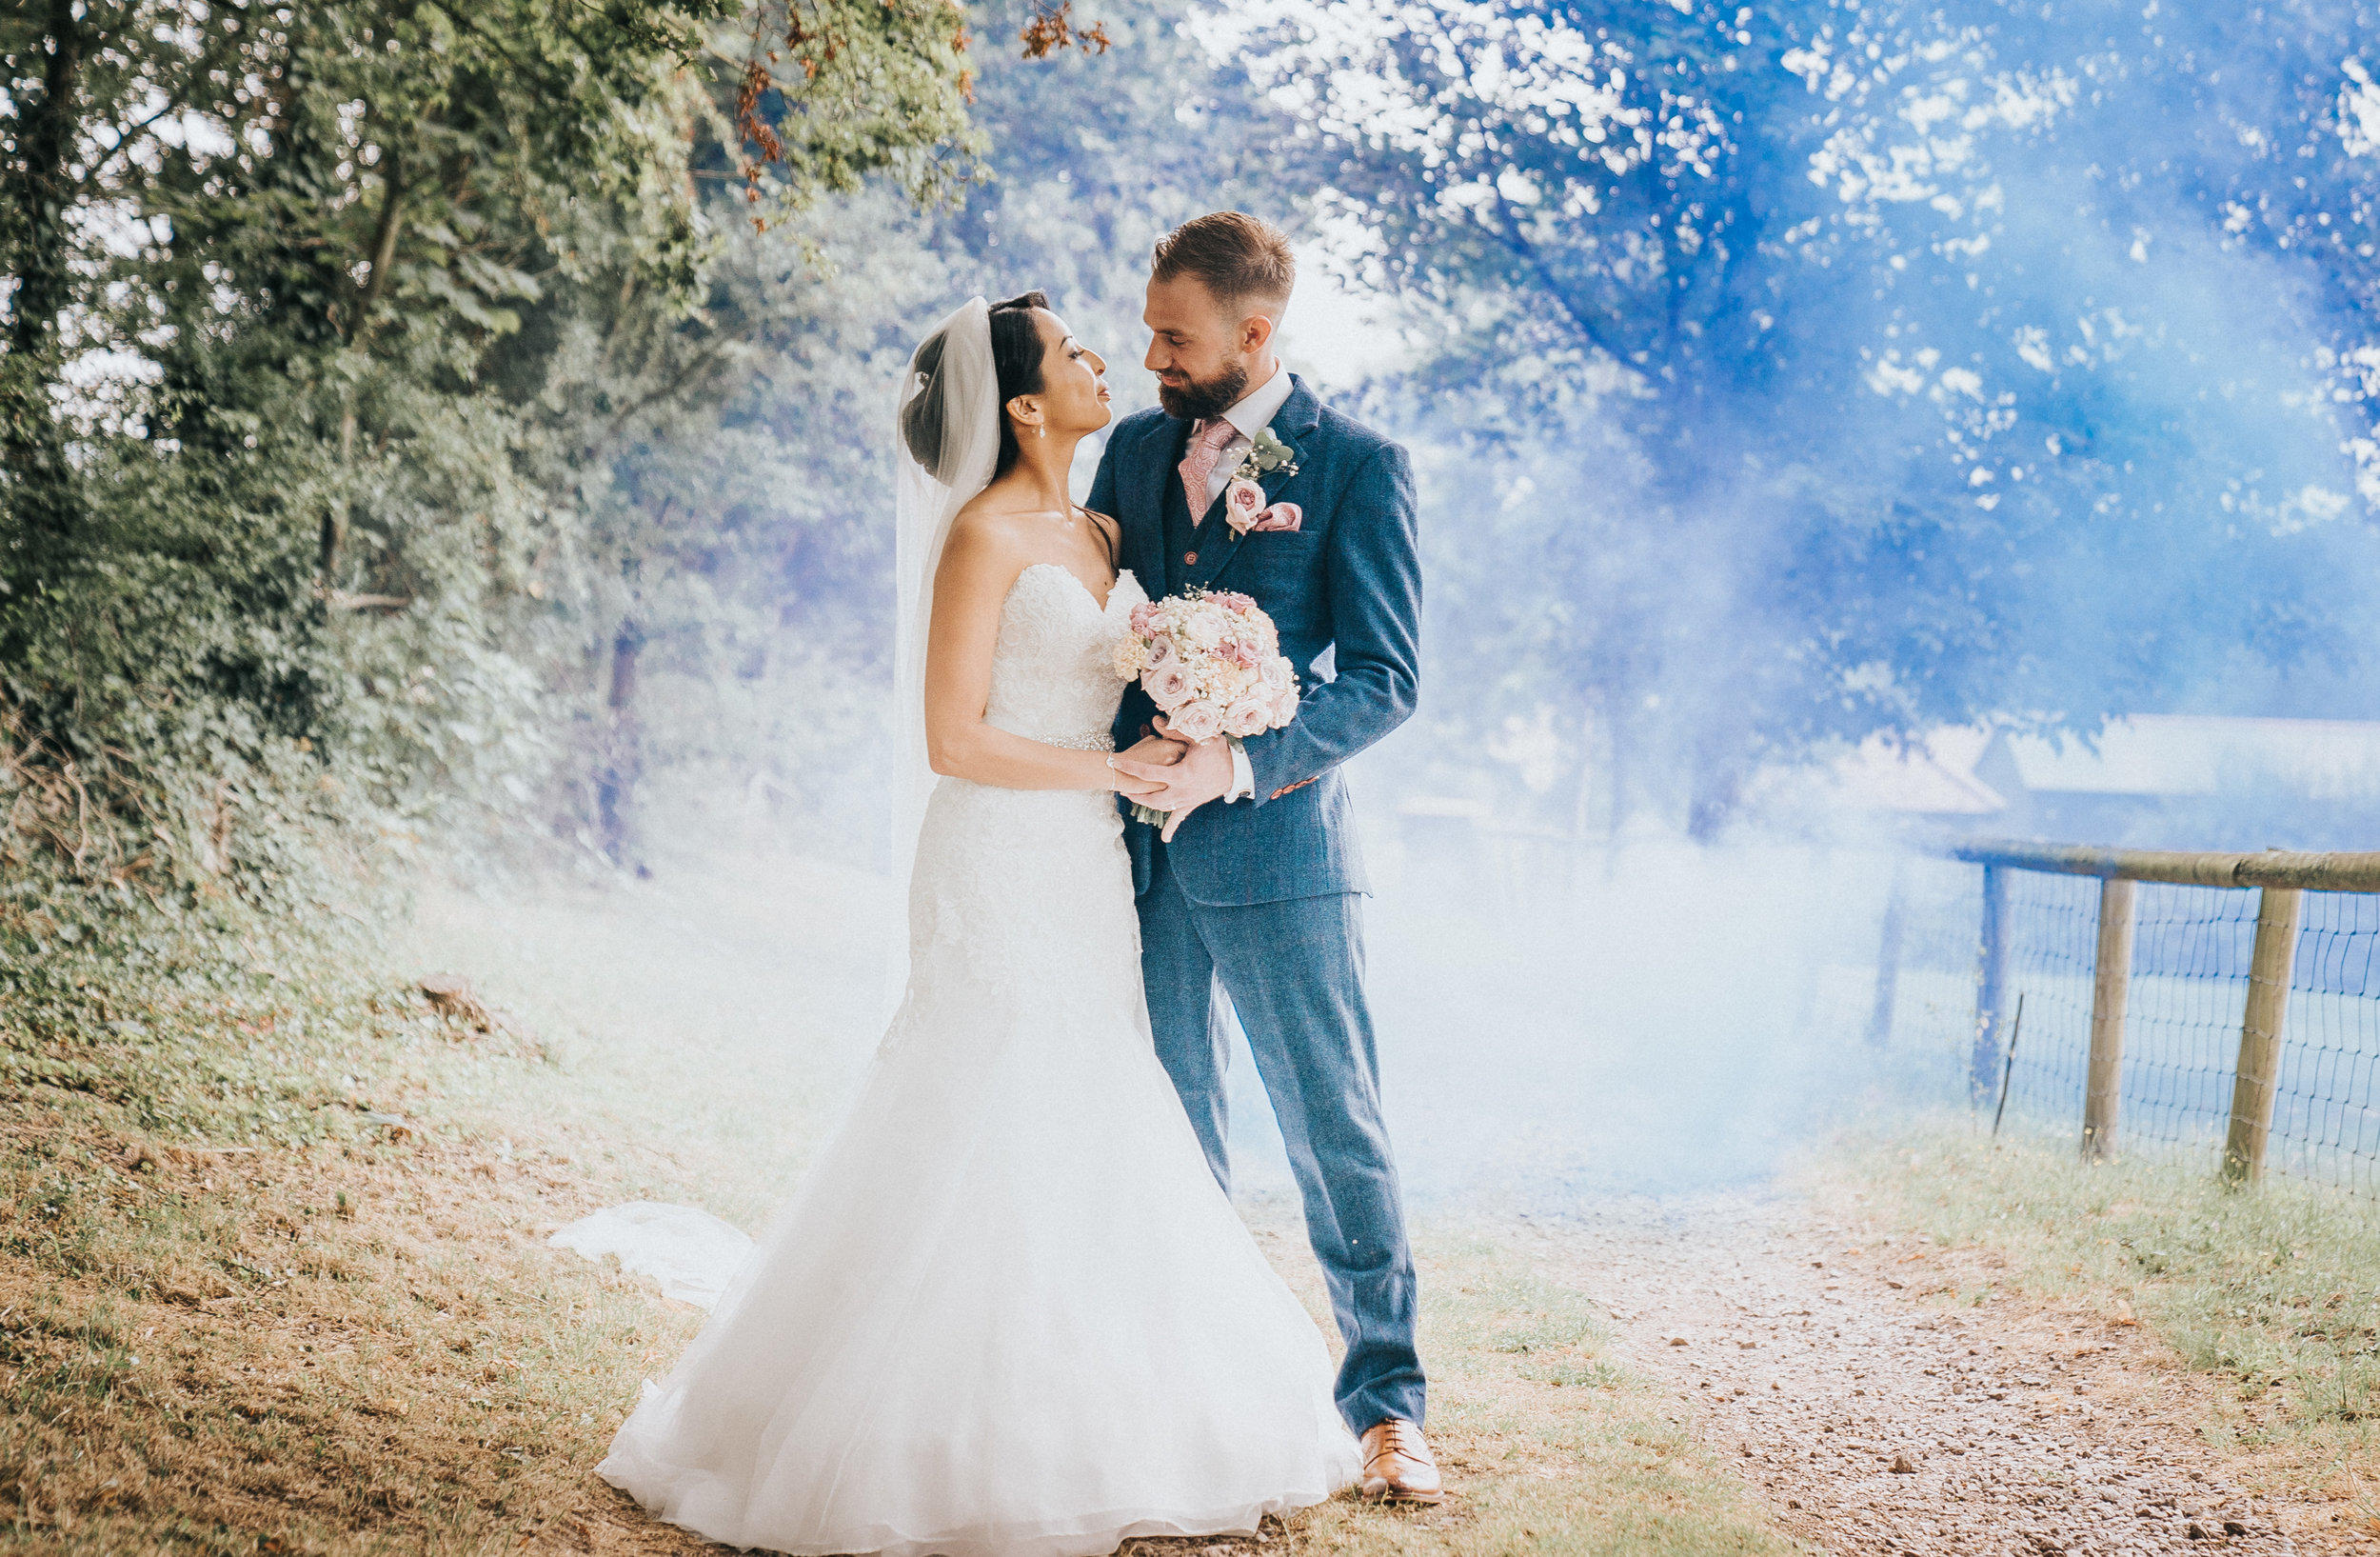 bedfordshire-london-wedding-photographer-videographer-46